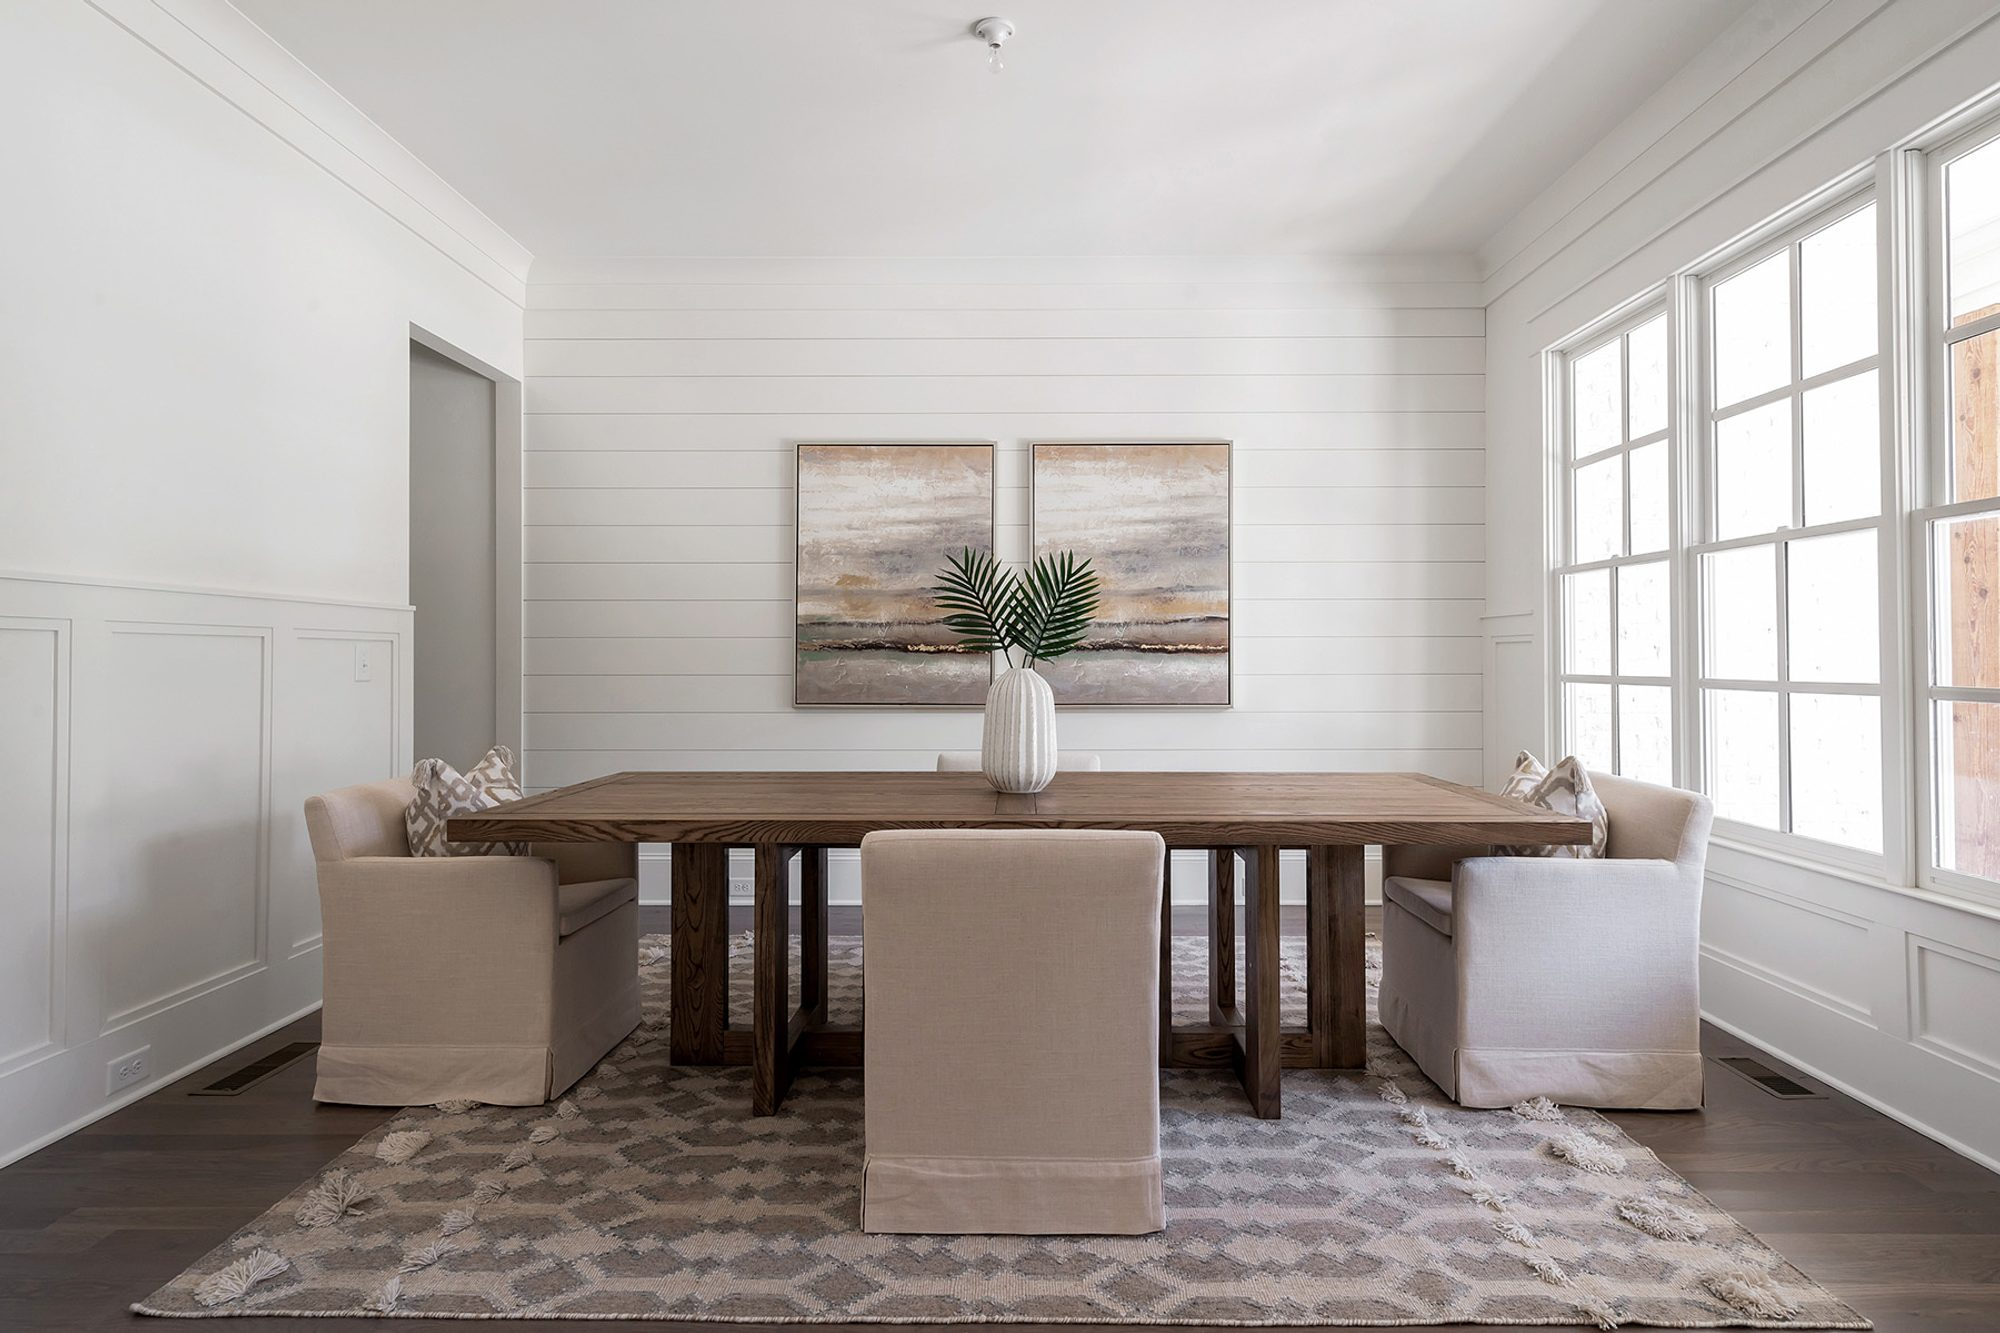 wool dining room rug transitional dining room design with wainscoting and shiplap walls.